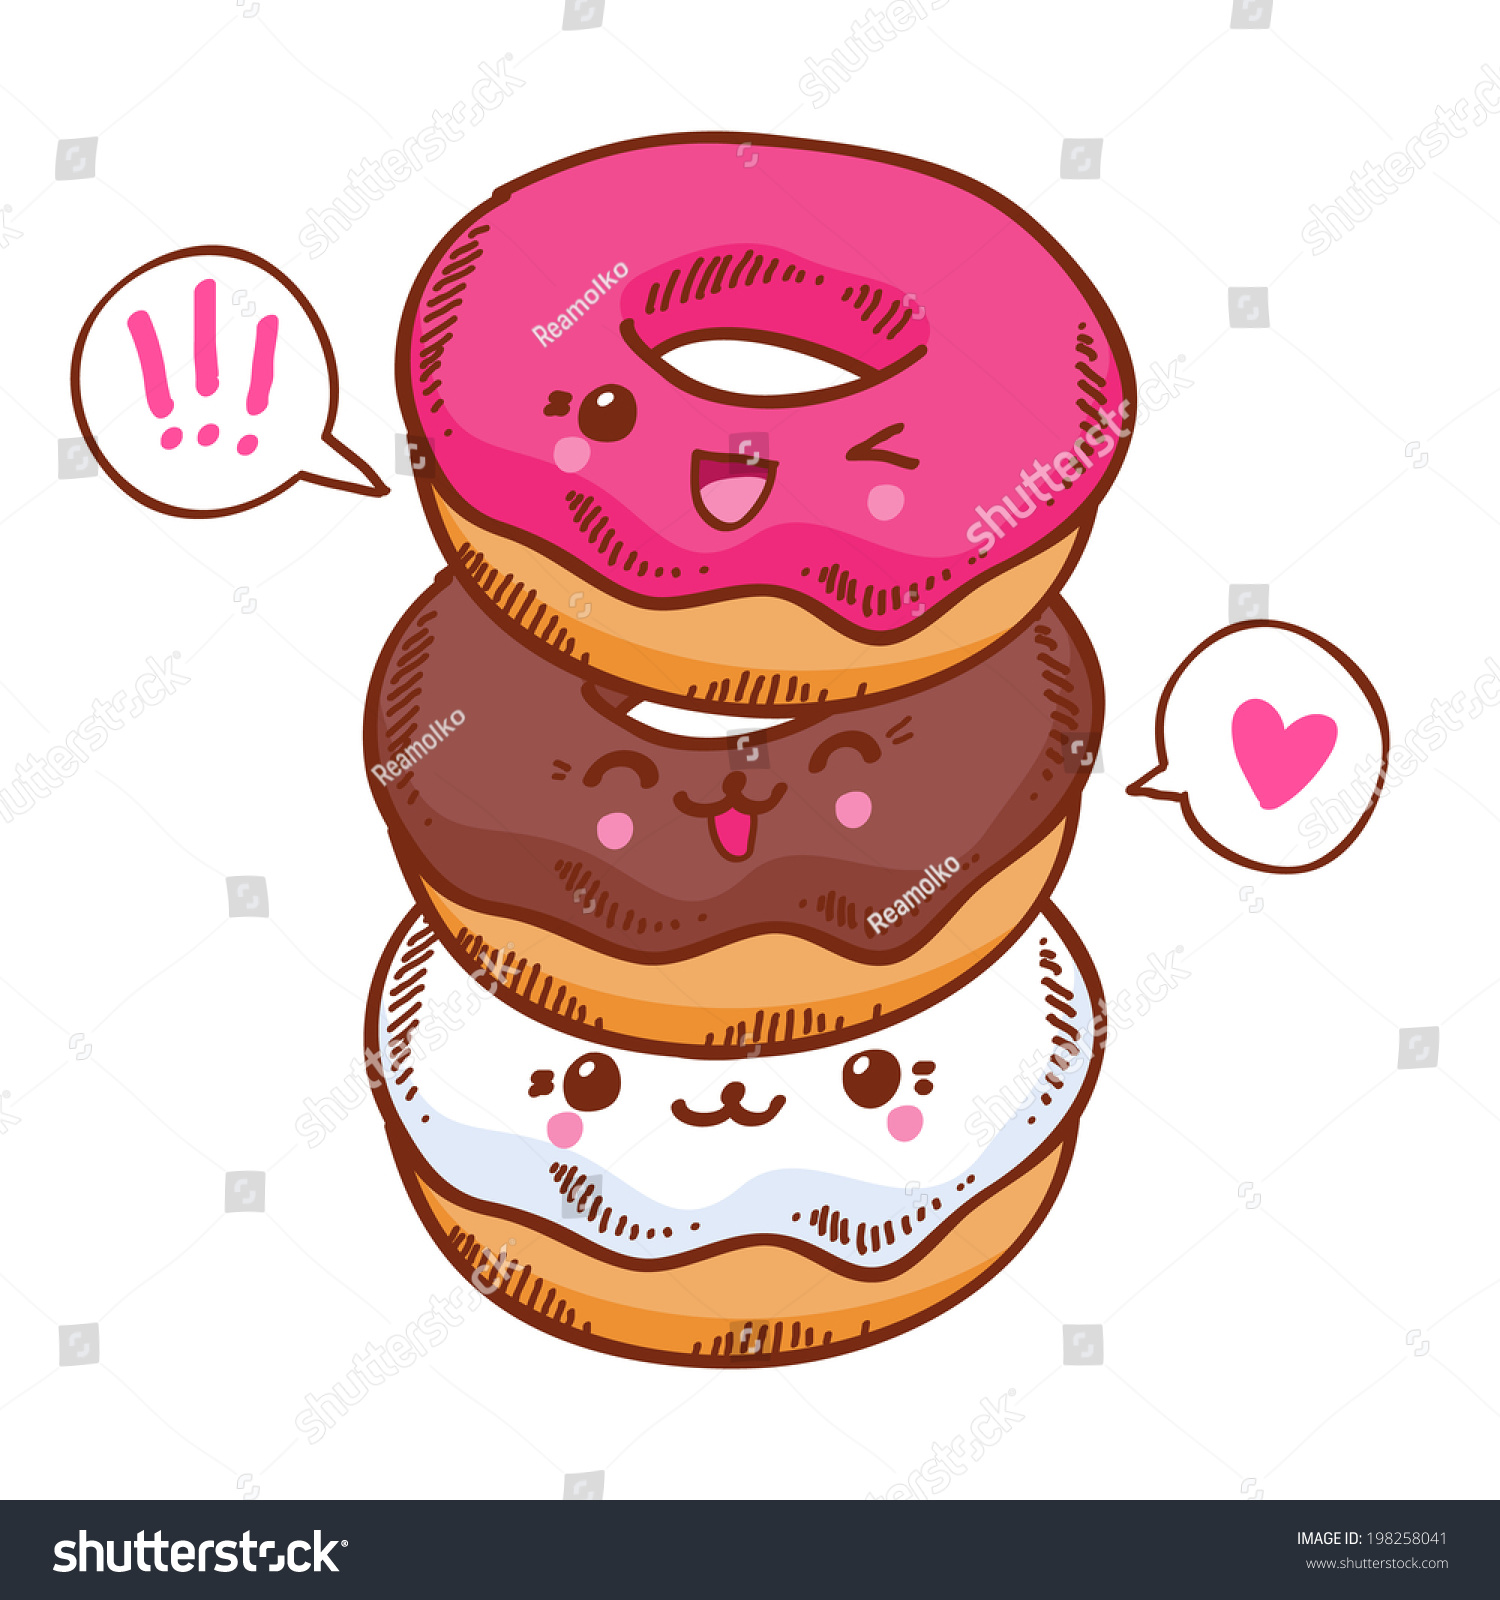 cute doughnut wallpaper